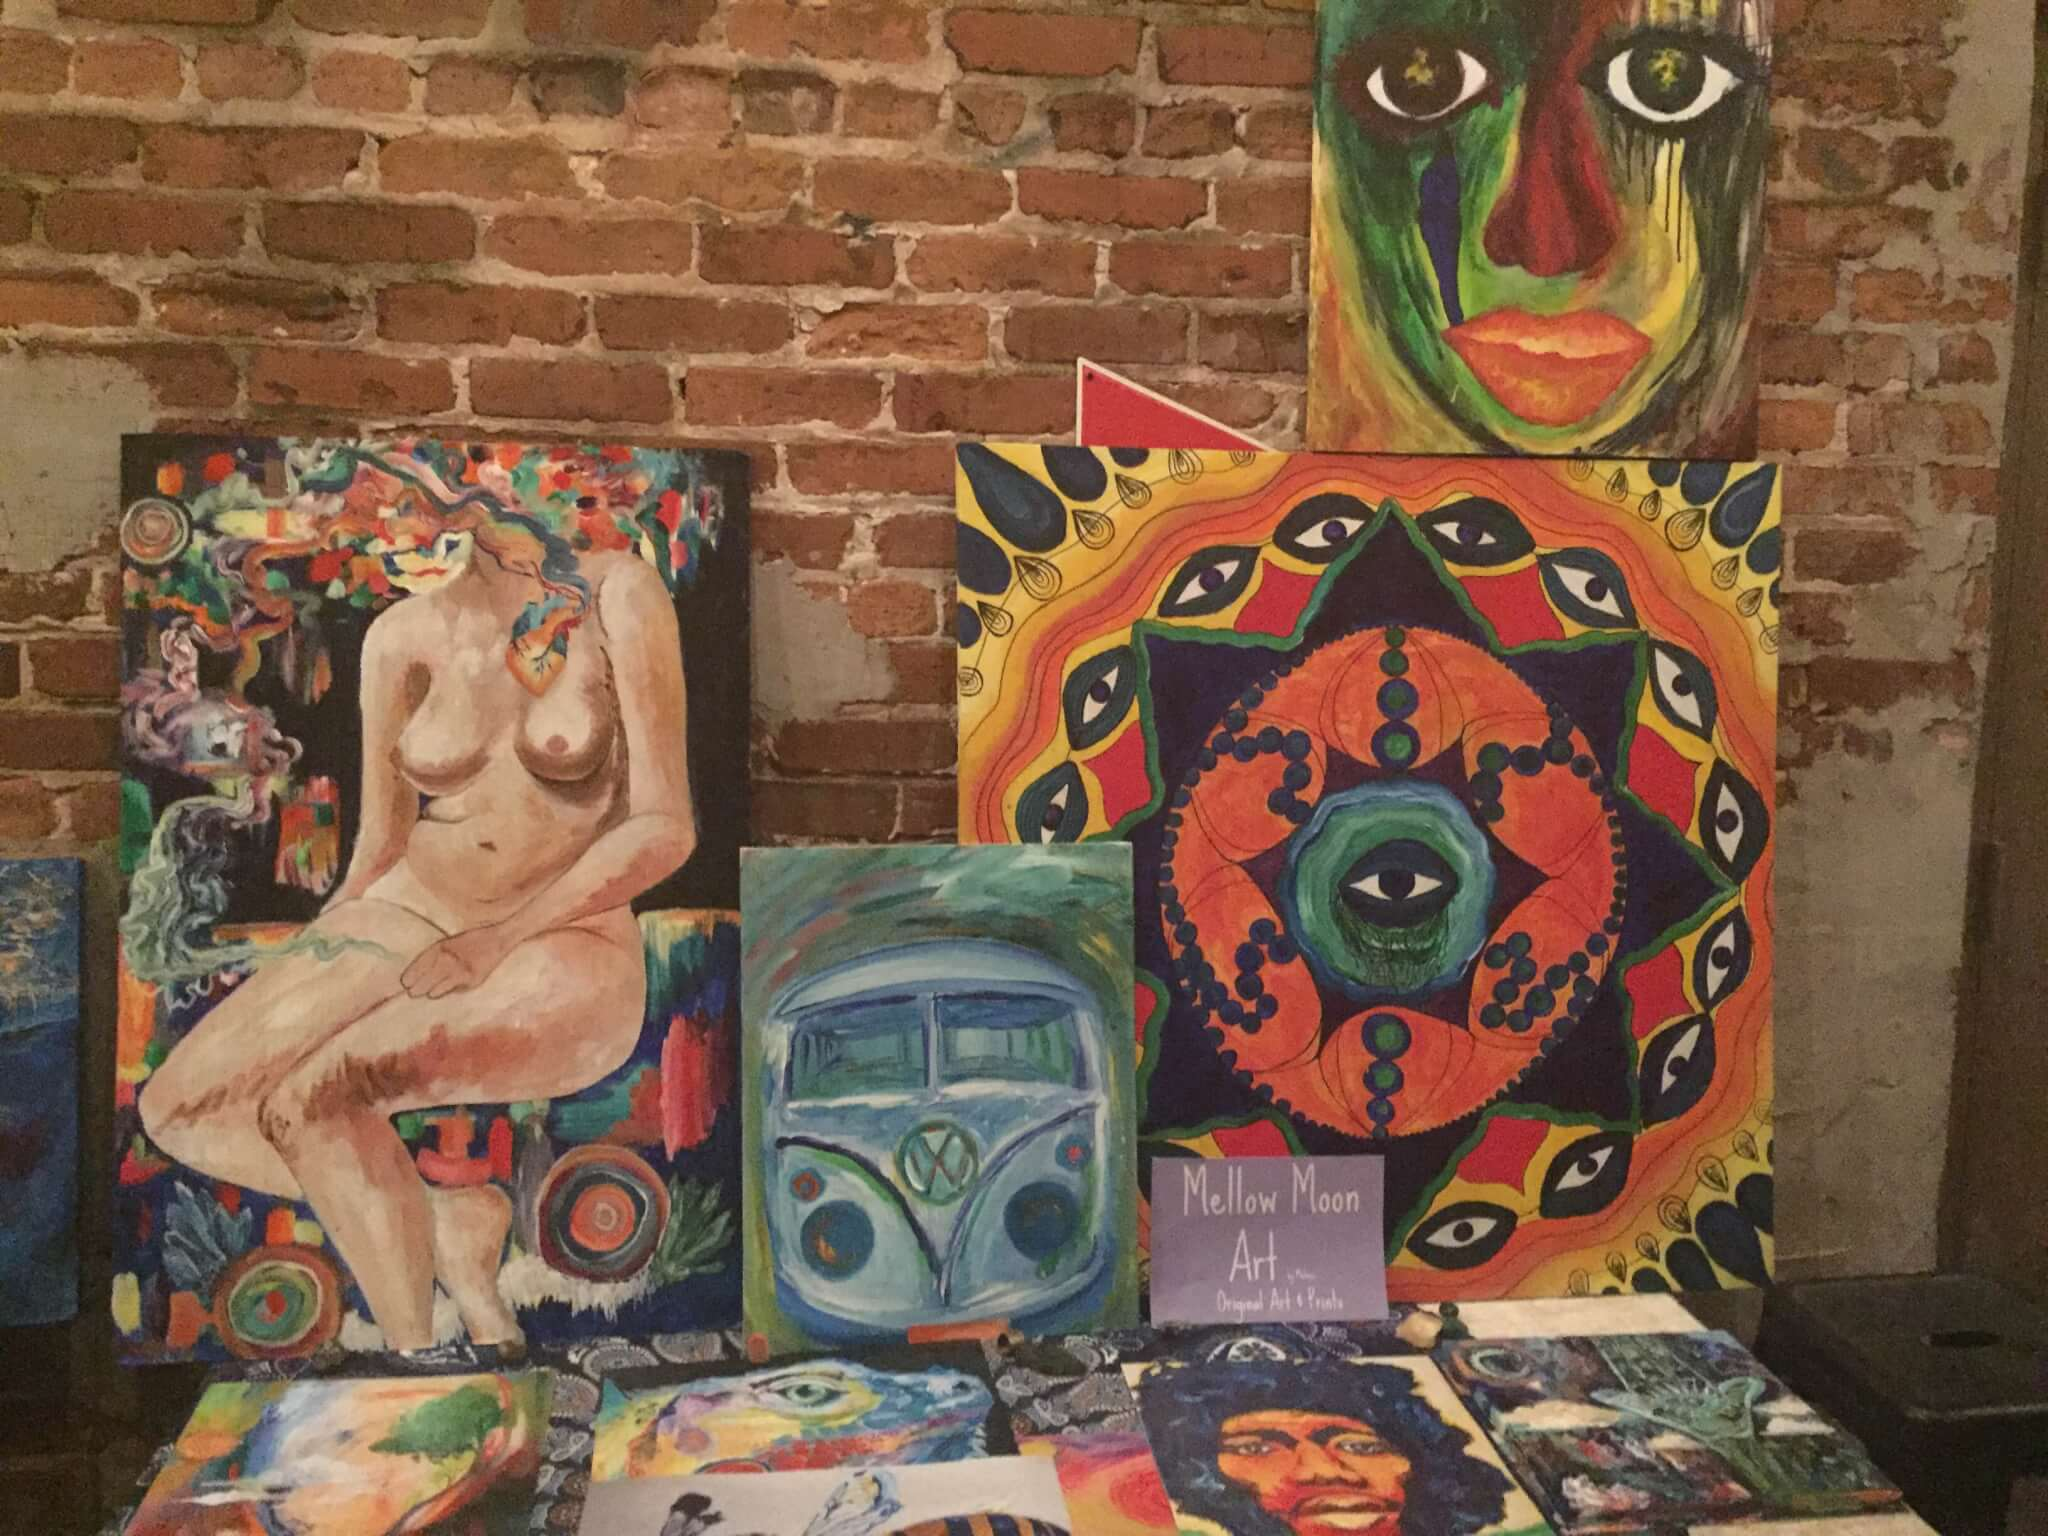 Upgrade your Friday plans with Art Walk in Downtown Fort Myers